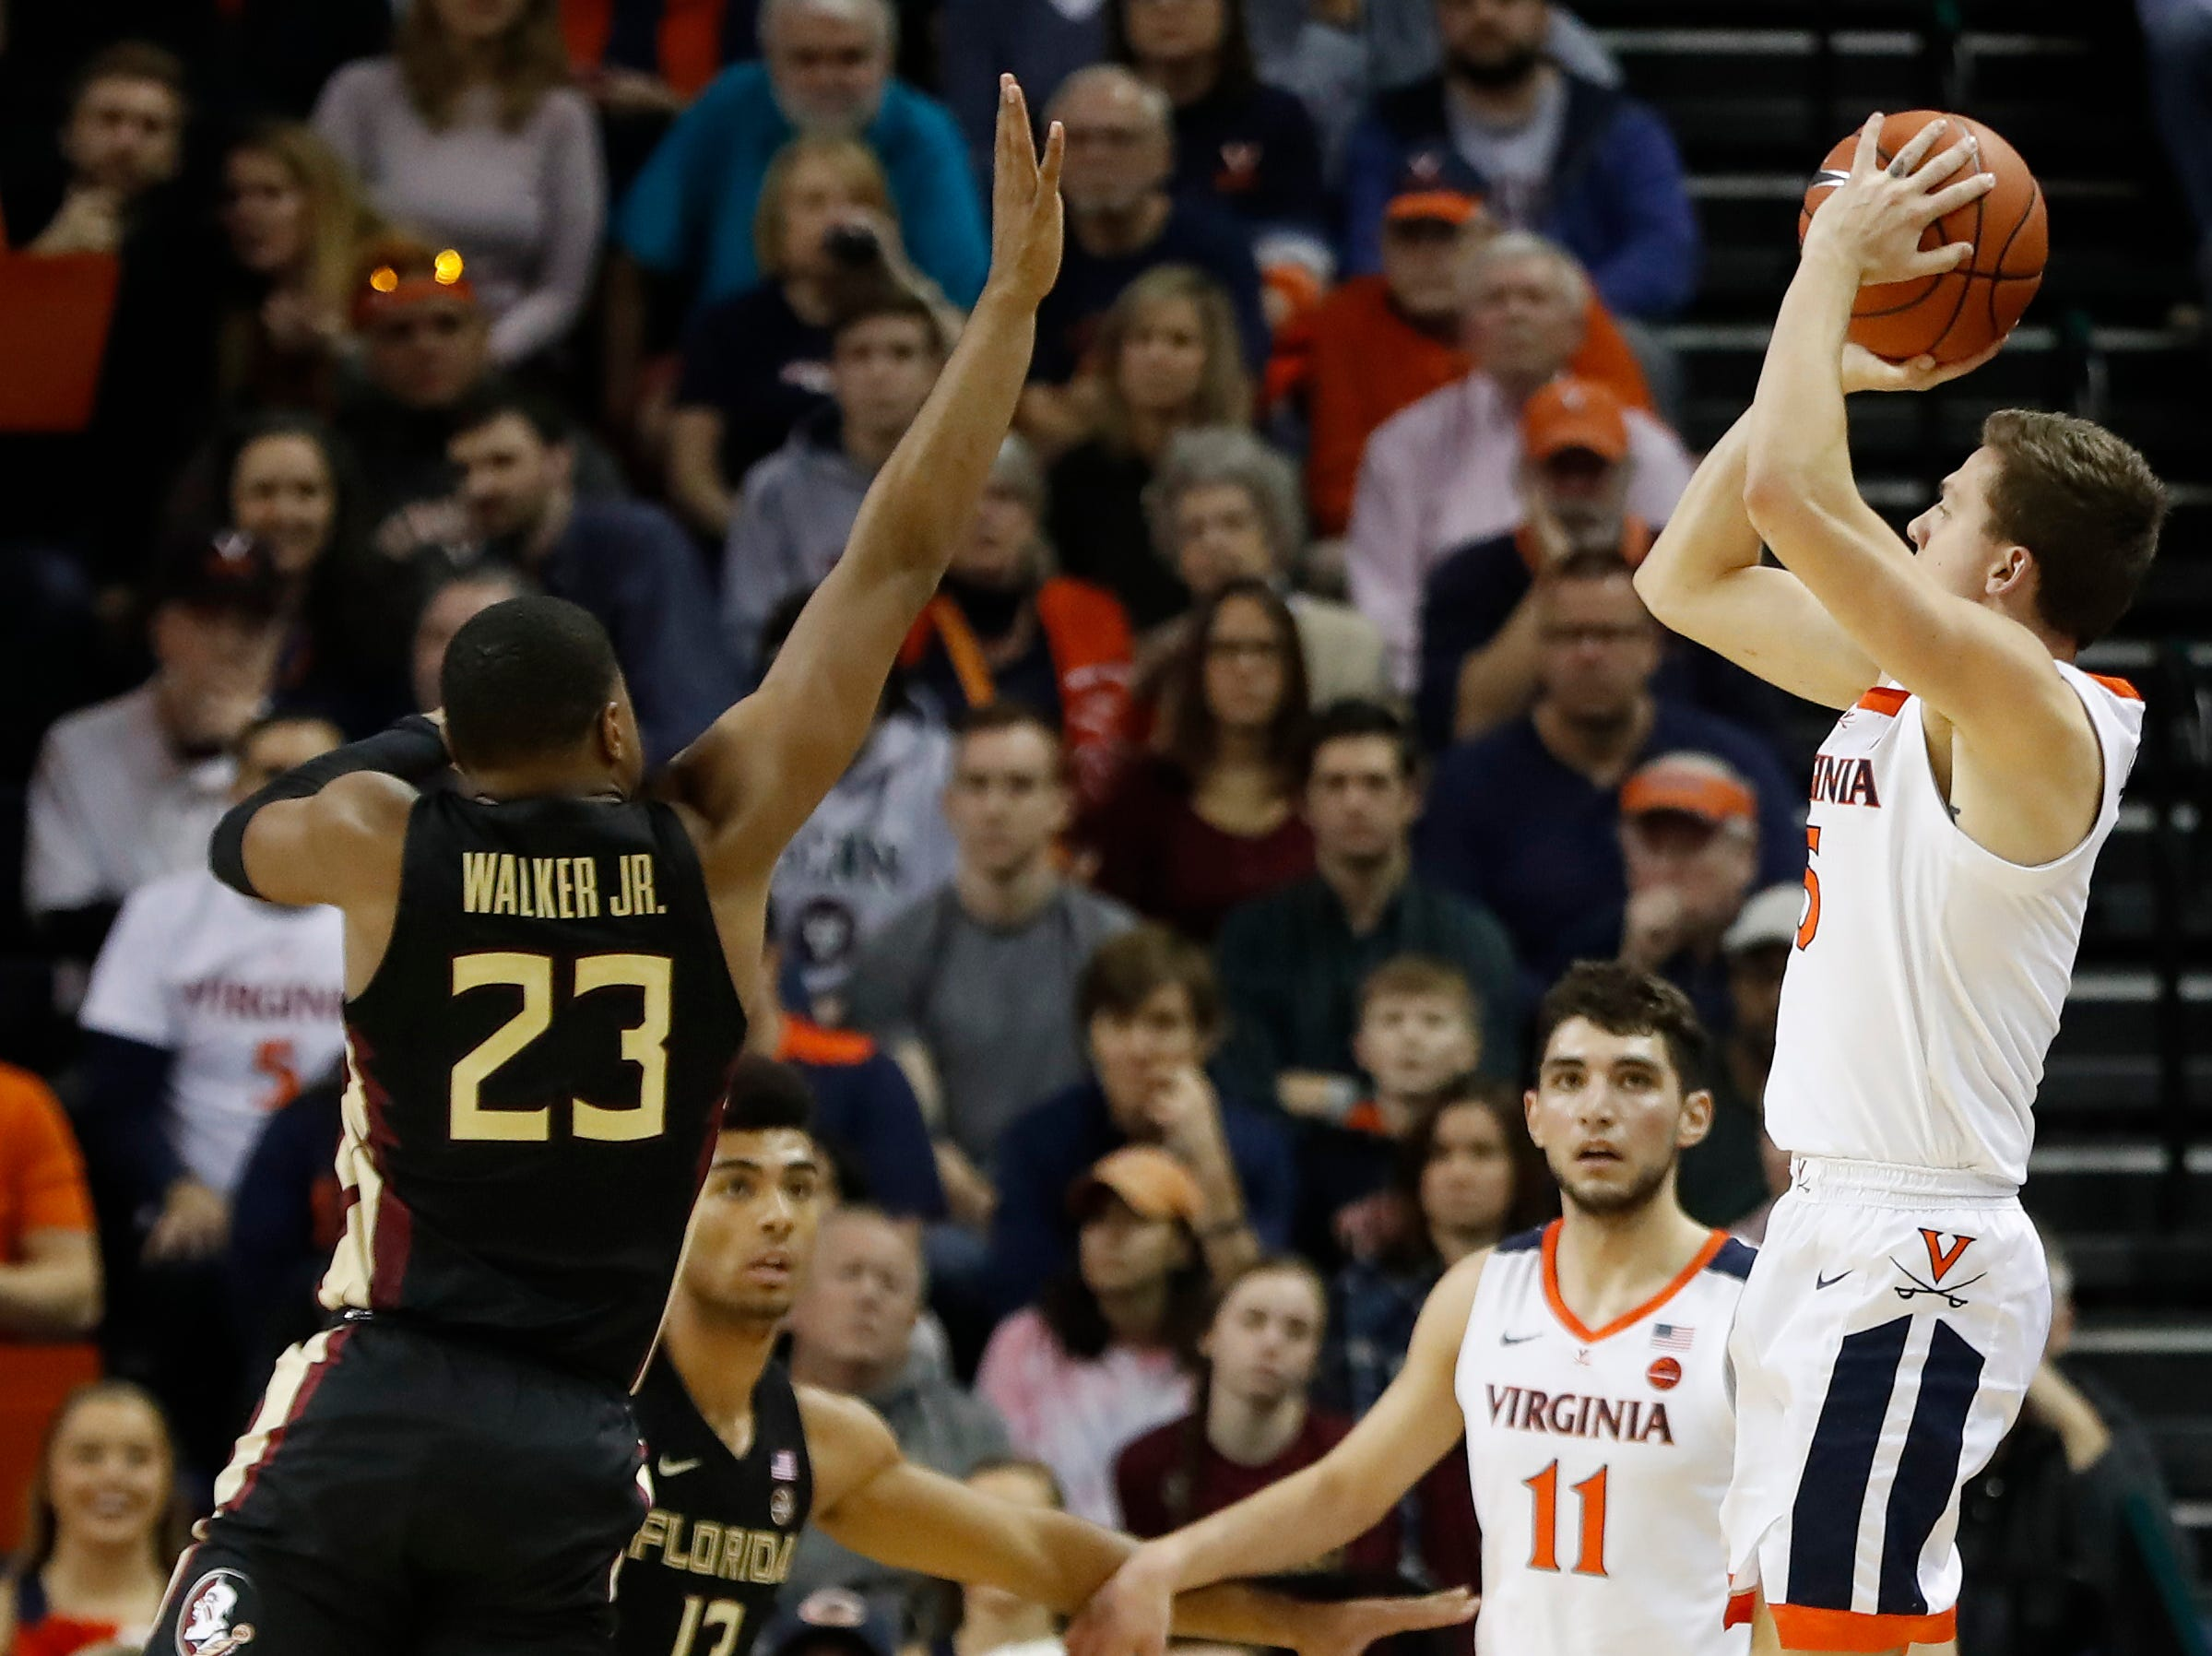 Jan 5, 2019; Charlottesville, VA, USA; Virginia Cavaliers guard Kyle Guy (5) shoots the ball over Florida State Seminoles guard M.J. Walker (23) in the first half at John Paul Jones Arena. Mandatory Credit: Geoff Burke-USA TODAY Sports